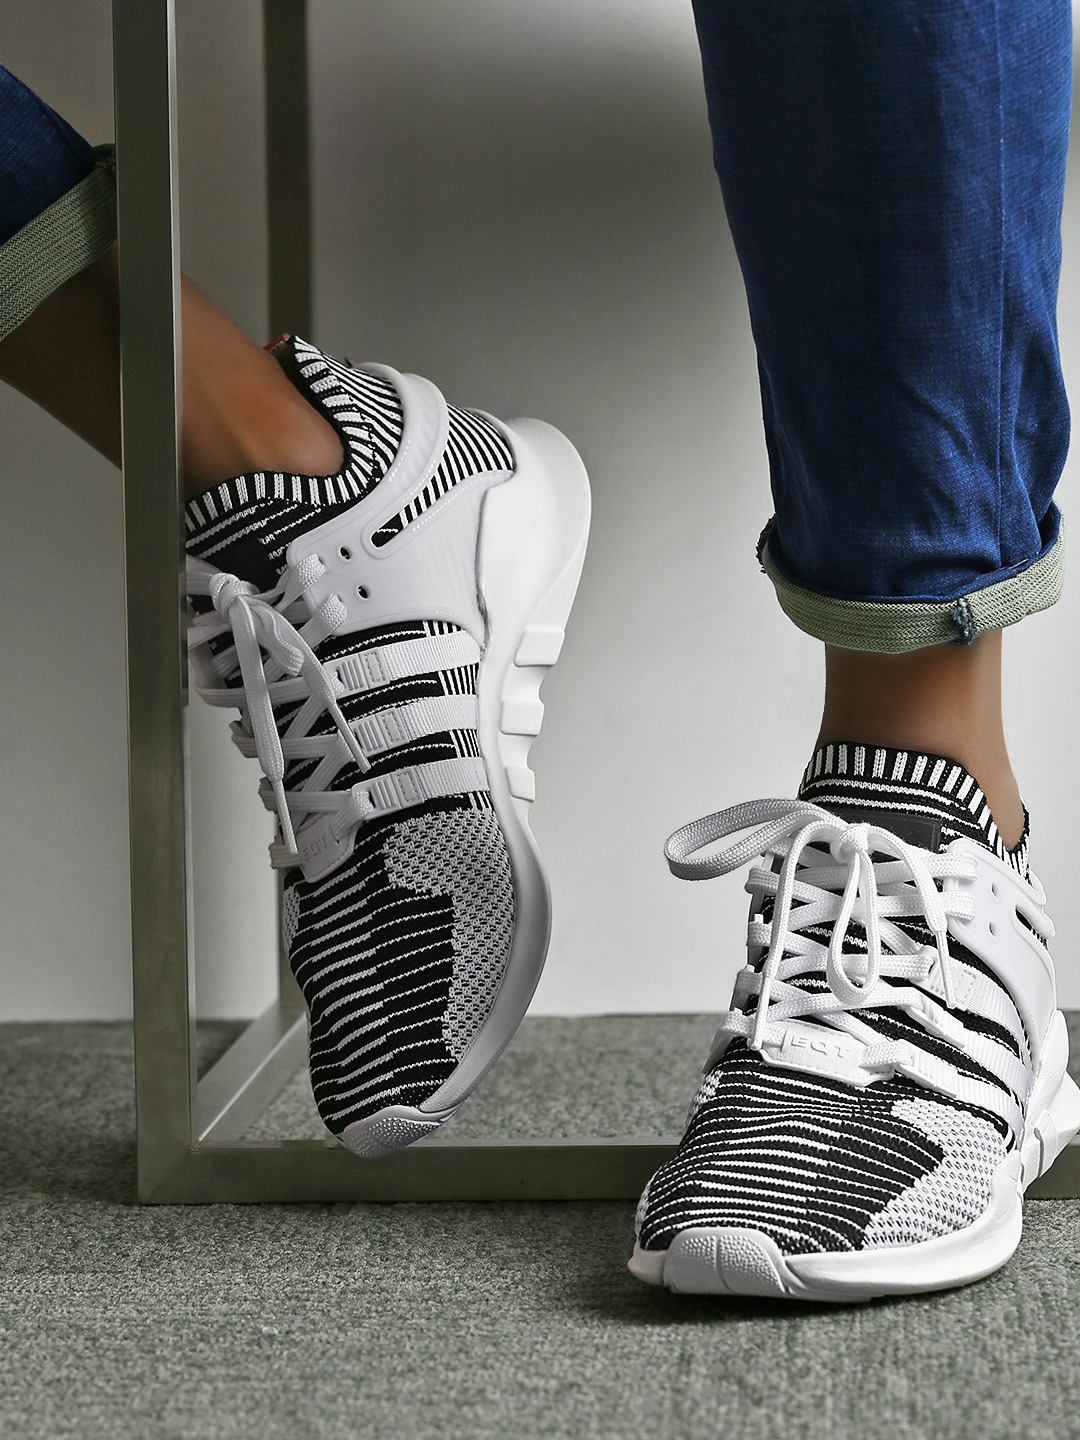 new concept f0b14 0d202 Buy ADIDAS Originals Men White  Black EQT Support ADV Primeknit Woven  Sneakers - Casual Shoes for Men 1774913  Myntra